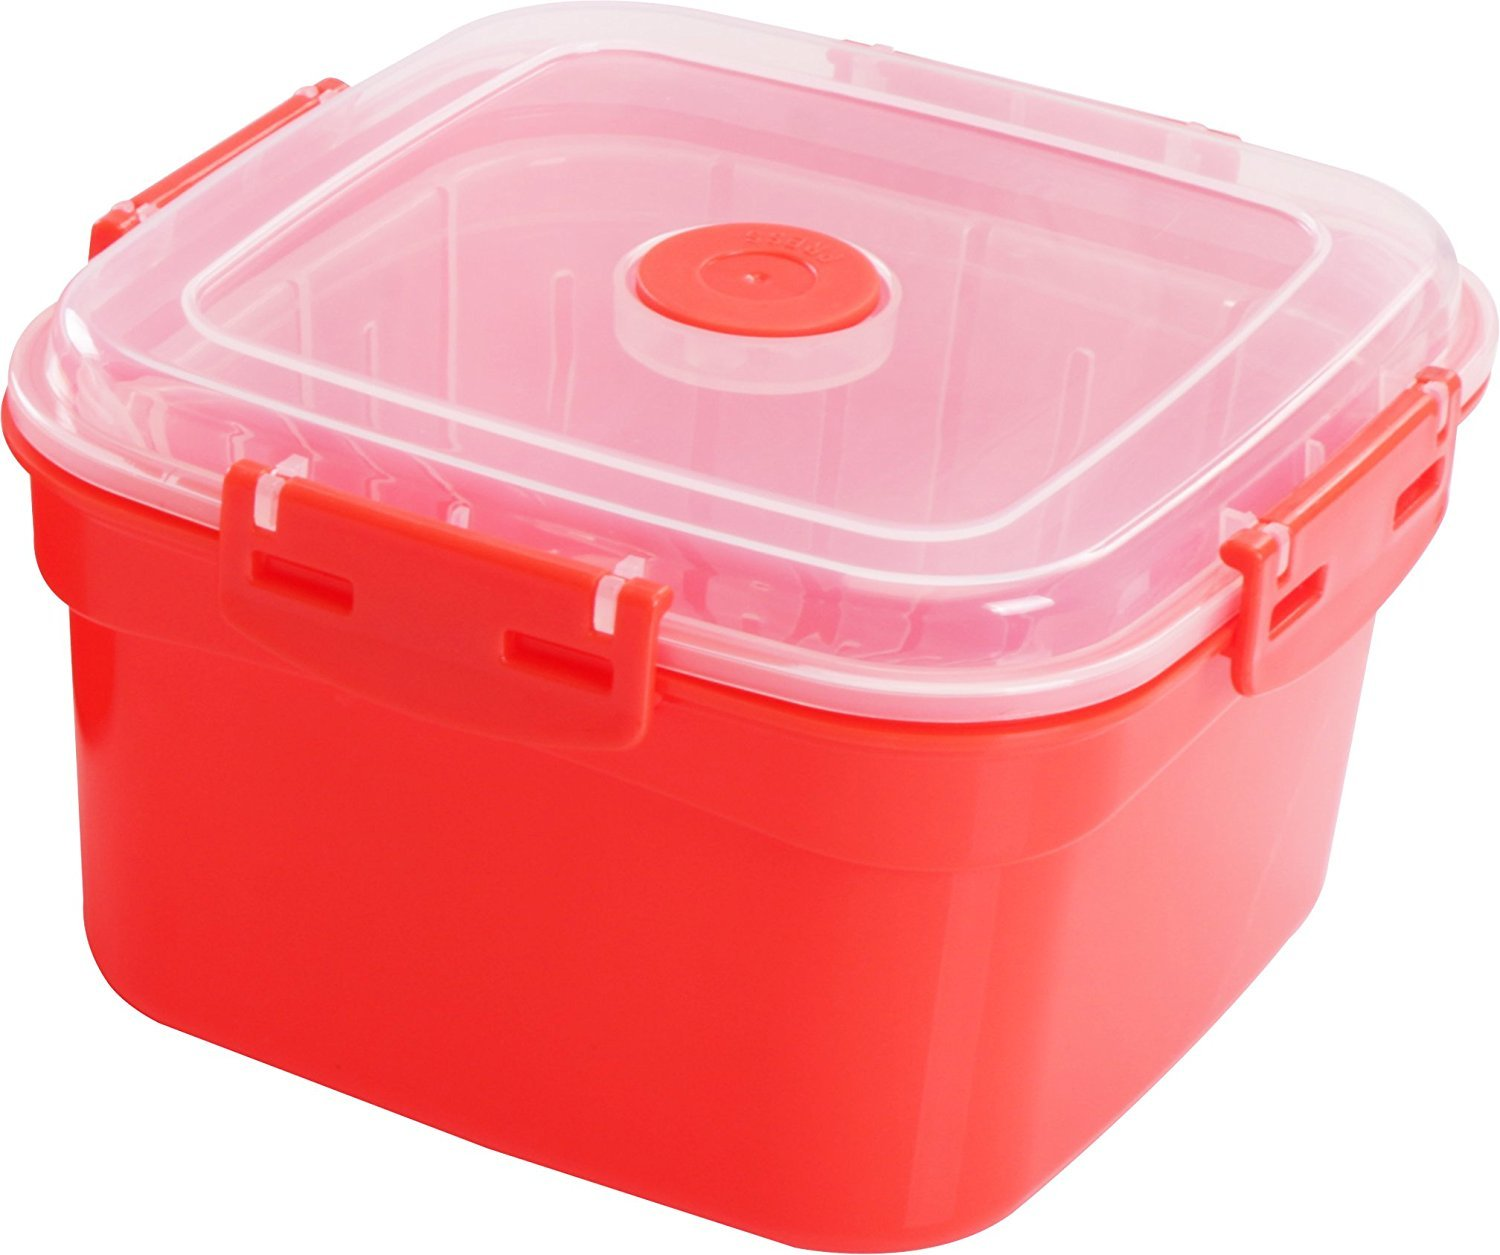 Microwave Steamer and Storage Container (2.11 quarts), BPA-Free PP Material by Utopia Kitchen UK0229